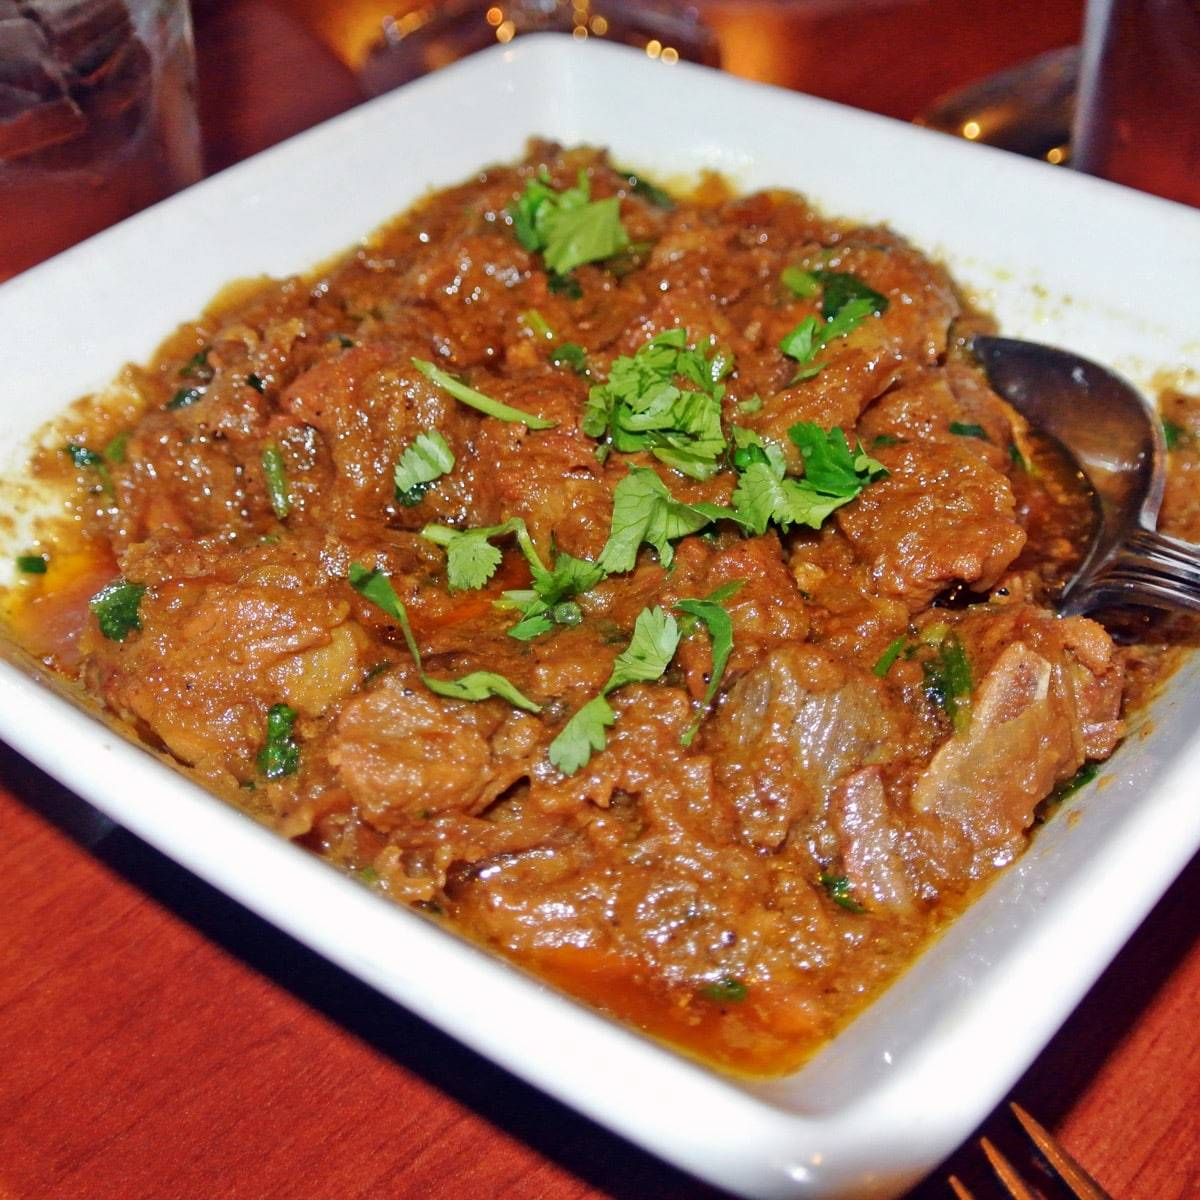 Classic Indian & Pakistani Curry at Shezan in Mountain View